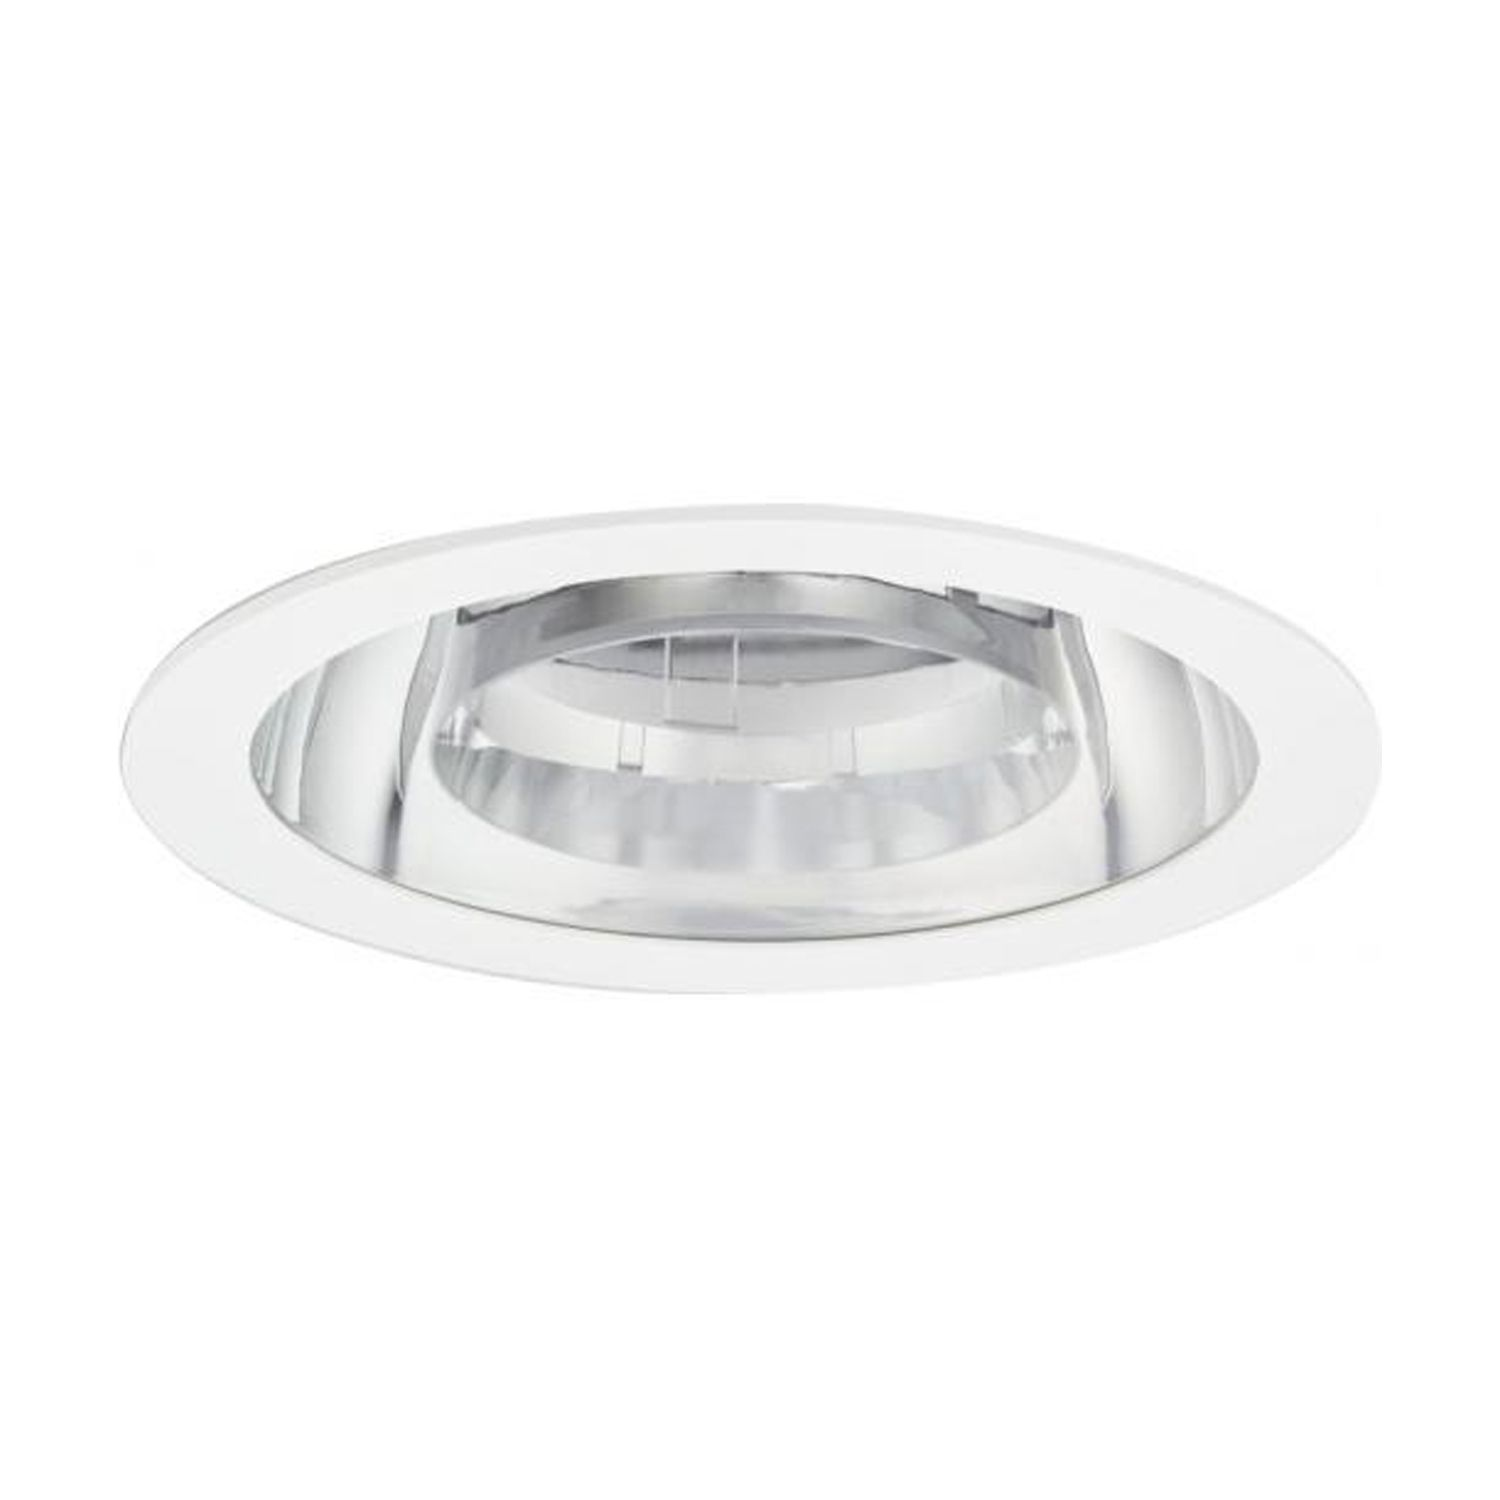 Philips GreenSpace2 DN471B 3000K 2000lm LED20S PSED-VLC-E C WH P | Warmweiß - Dali Dimmbar